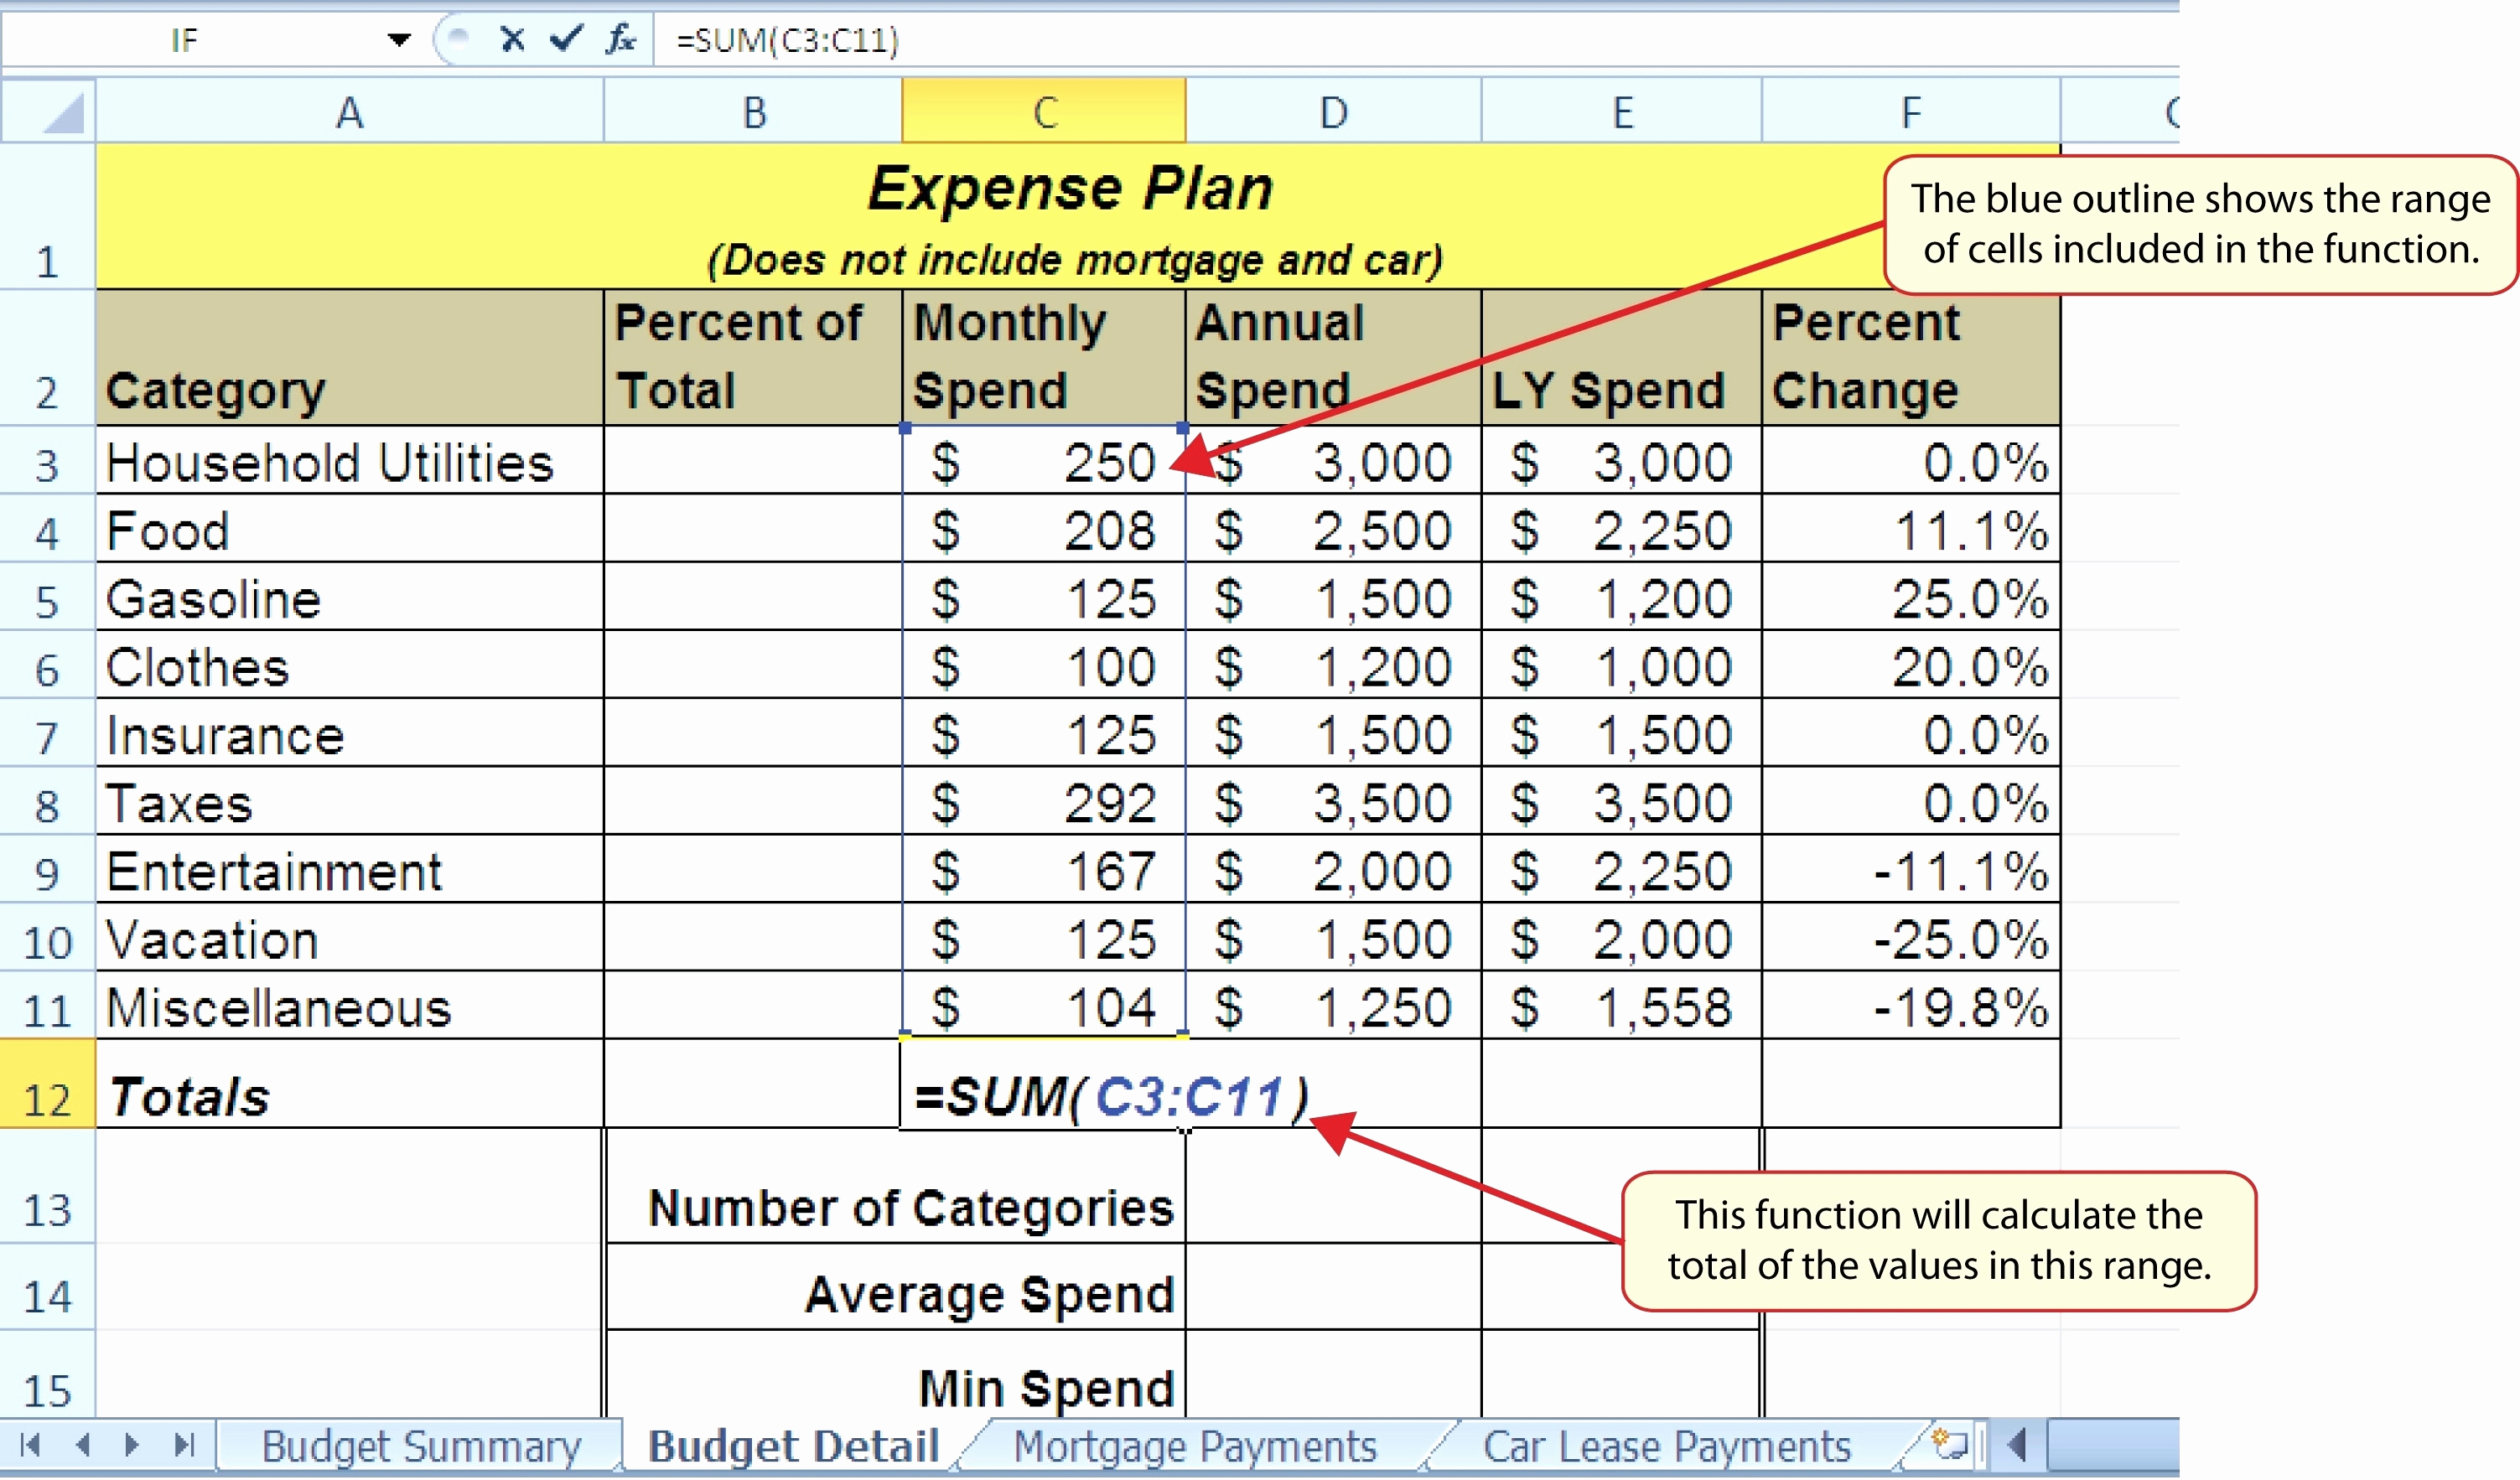 Novated Lease Calculator Spreadsheet Intended For Car Leasetor Spreadsheet Unique Rent Roll Example Documents Ideas Of